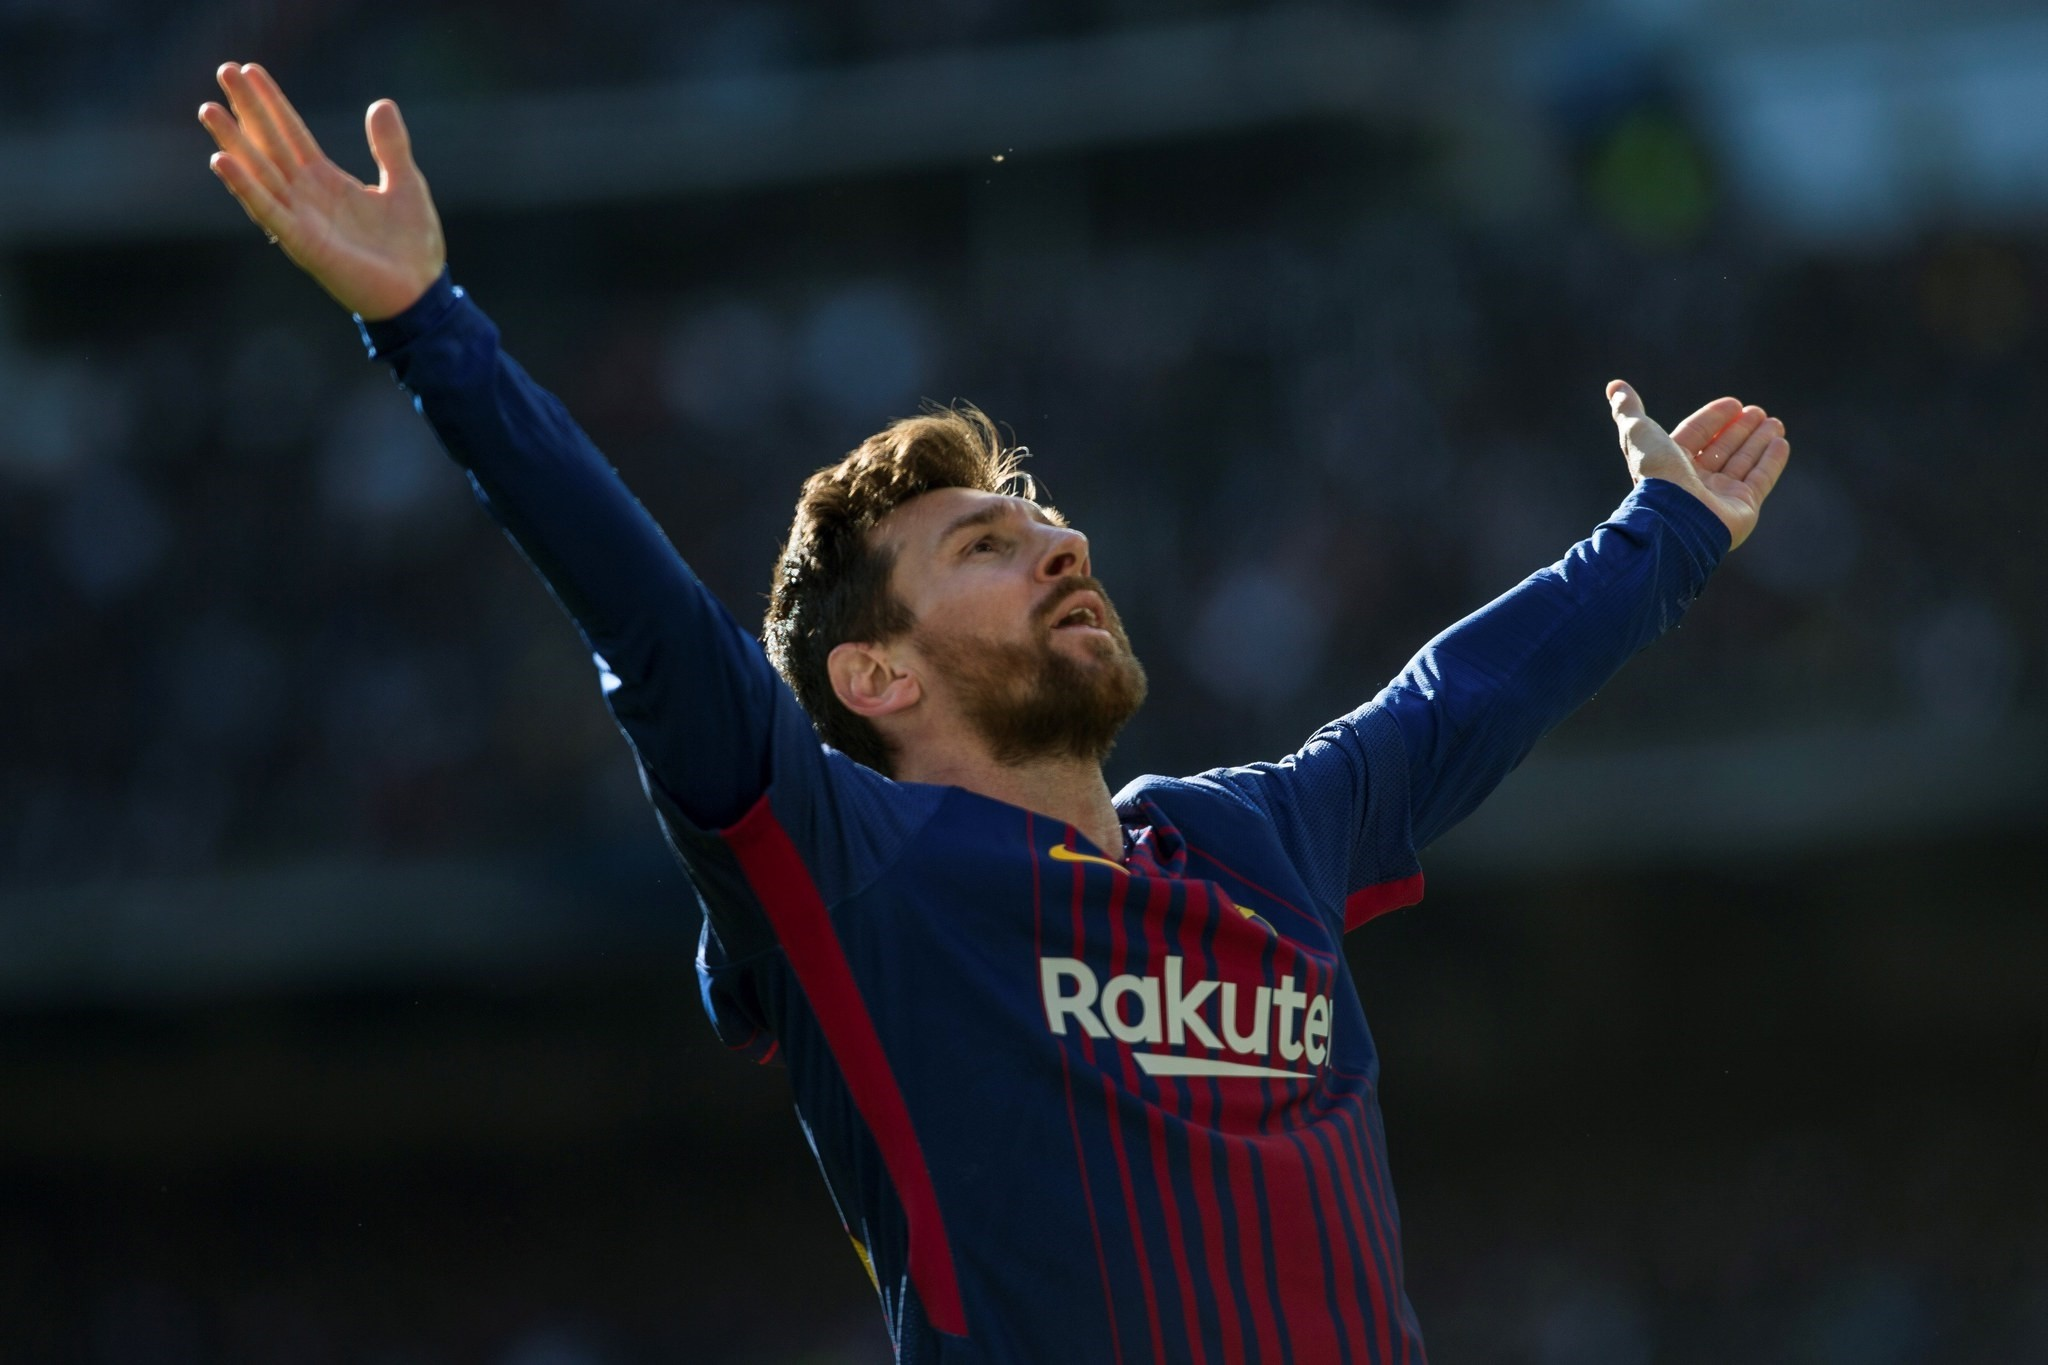 FC Barcelona's Argentine forward Lionel Messi celebrates after scoring the 0-2 goal during the Spanish Primera Division match against Real Madrid in Madrid, Spain, Dec. 23 2017. (EPA Photo)